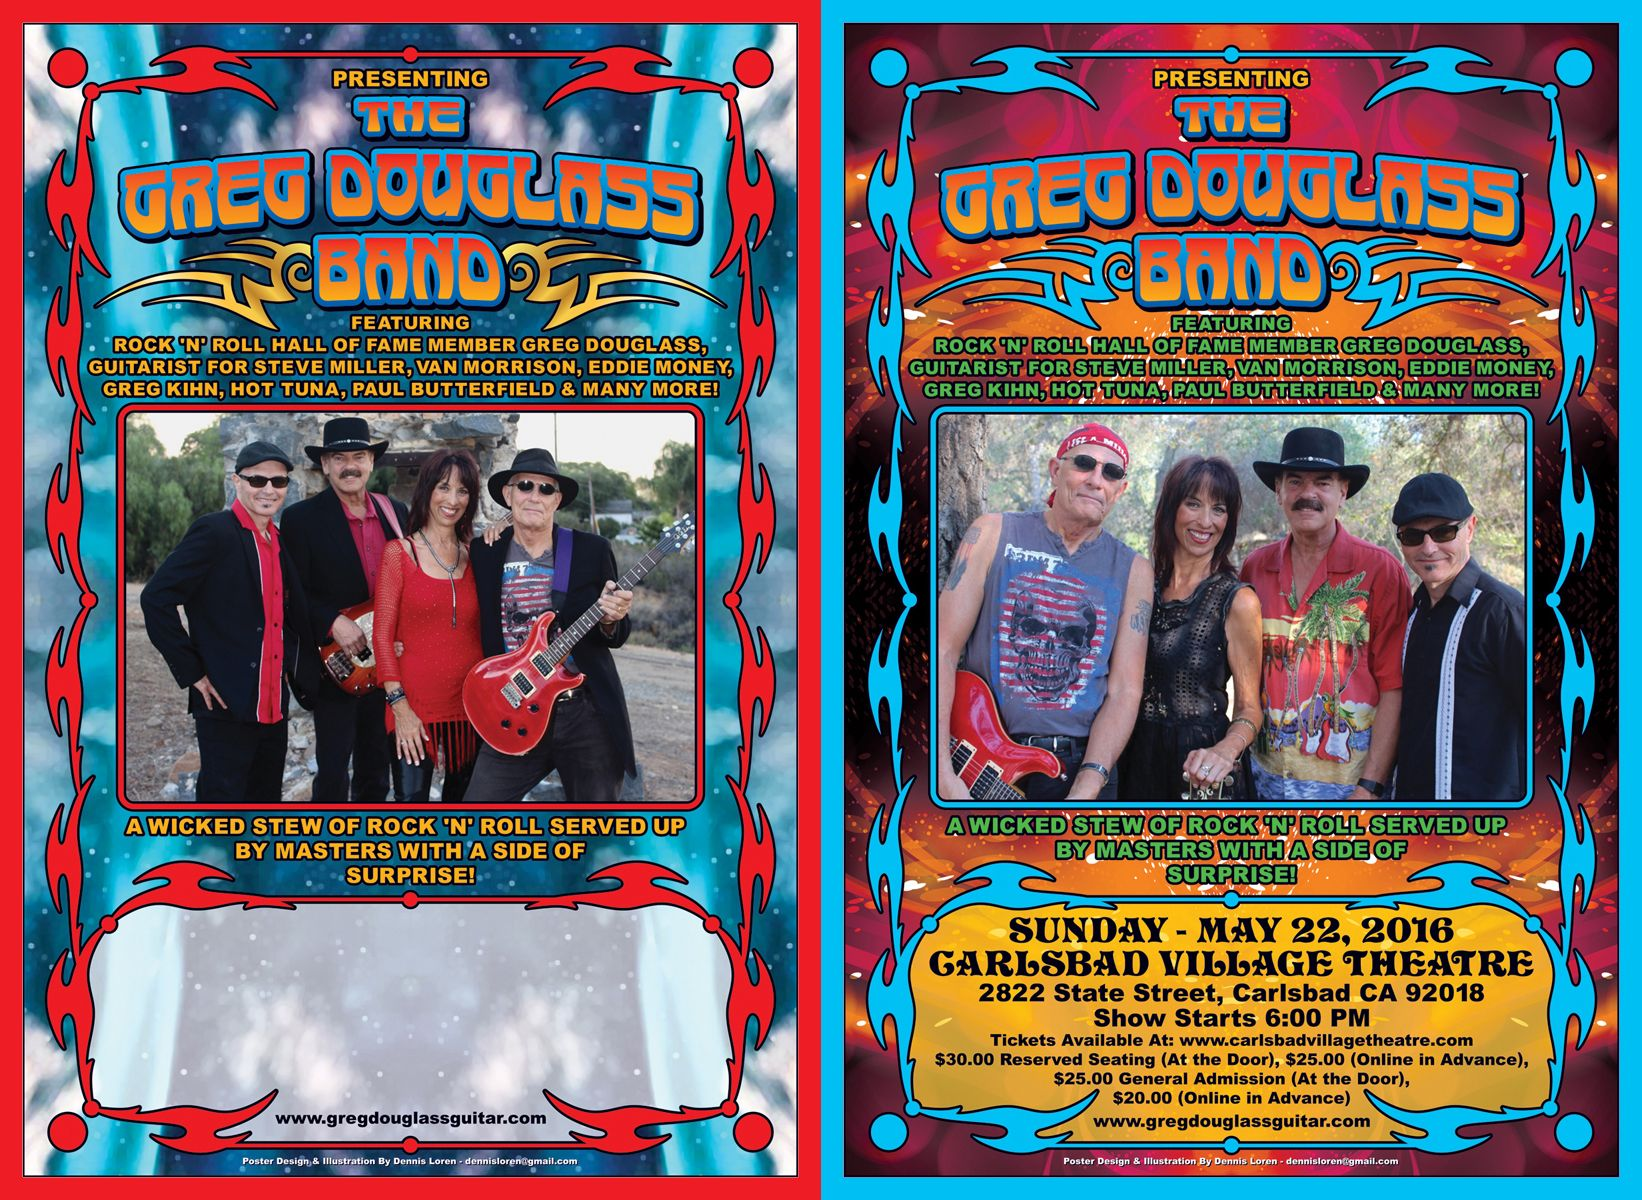 A tour blank poster (on the left) and an upcoming concert poster (on the right), that I designed for the Greg Douglass Band. Greg has played guitar with a wide array of groups and solo performers from The Steve Miller Band and Hot Tuna to Van Morrison and Eddie Money.